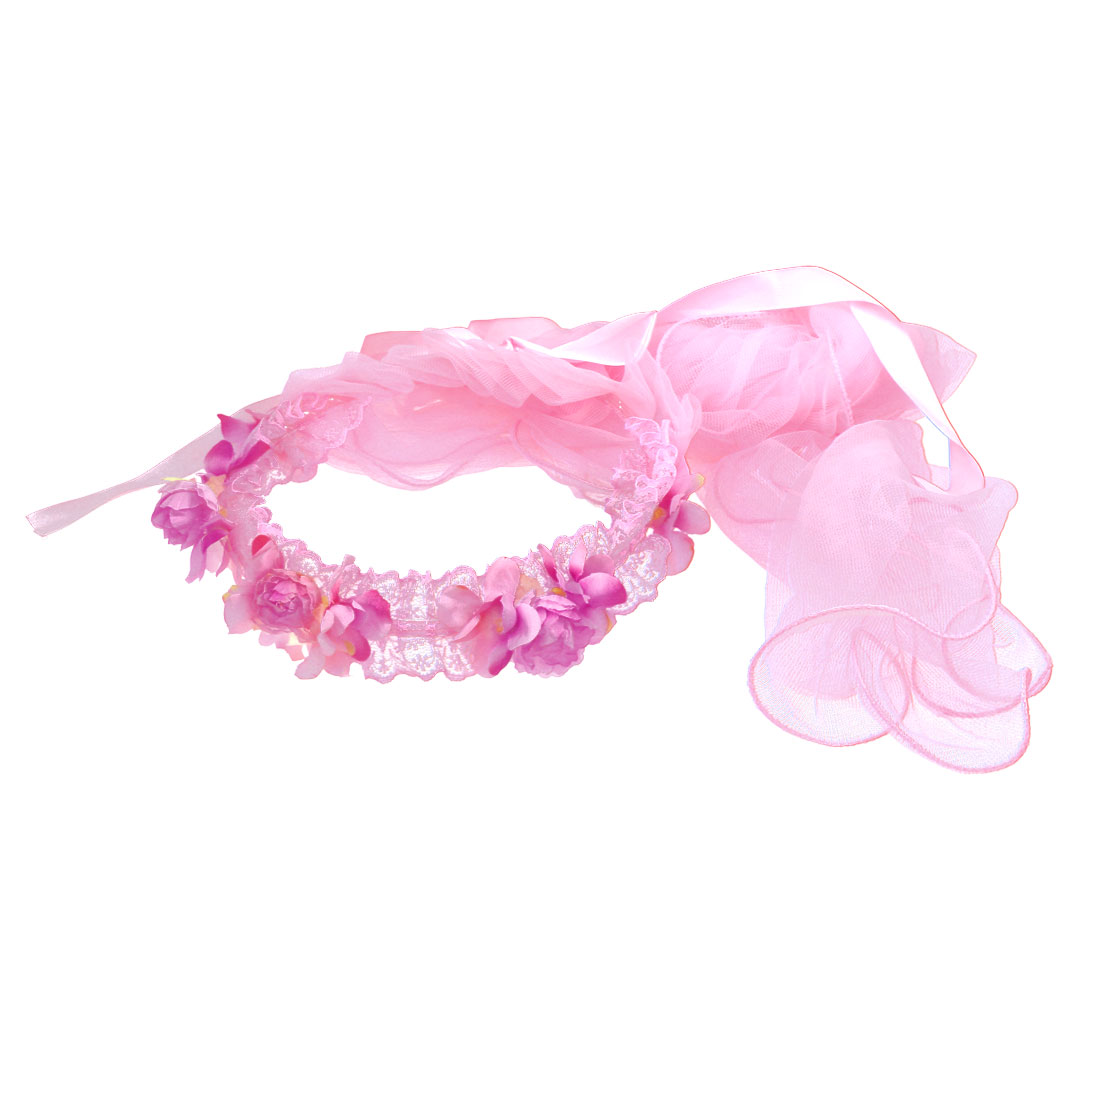 Flower Pattern Women Wedding Party Hair Band Crown Garland Wreath Veil Pink